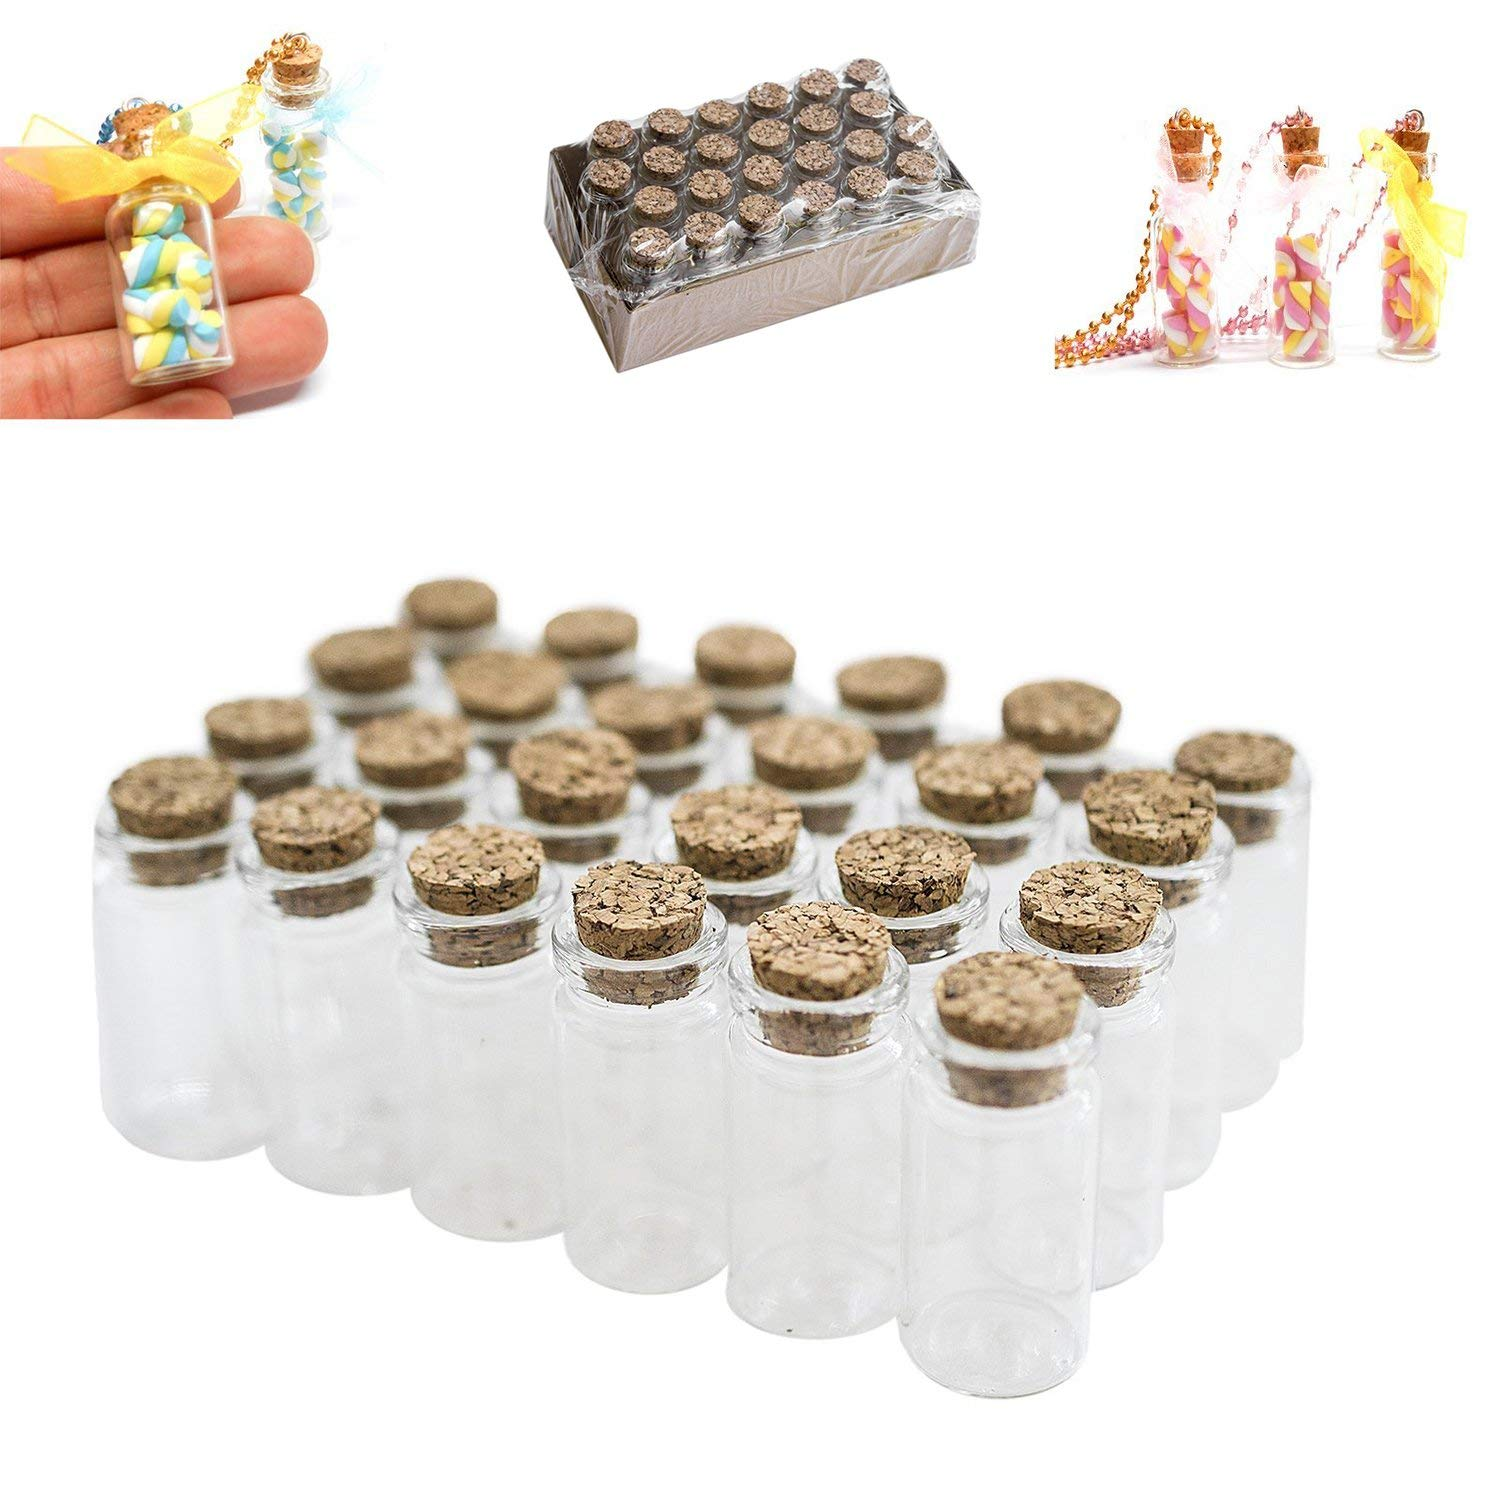 """Mini Clear Glass Jars Bottles with Cork Stoppers for Arts & Crafts, Projects, Decoration, Party Favors - Size: 1-1/2"""" Tall X 3/4 Inches Diameter (24)"""